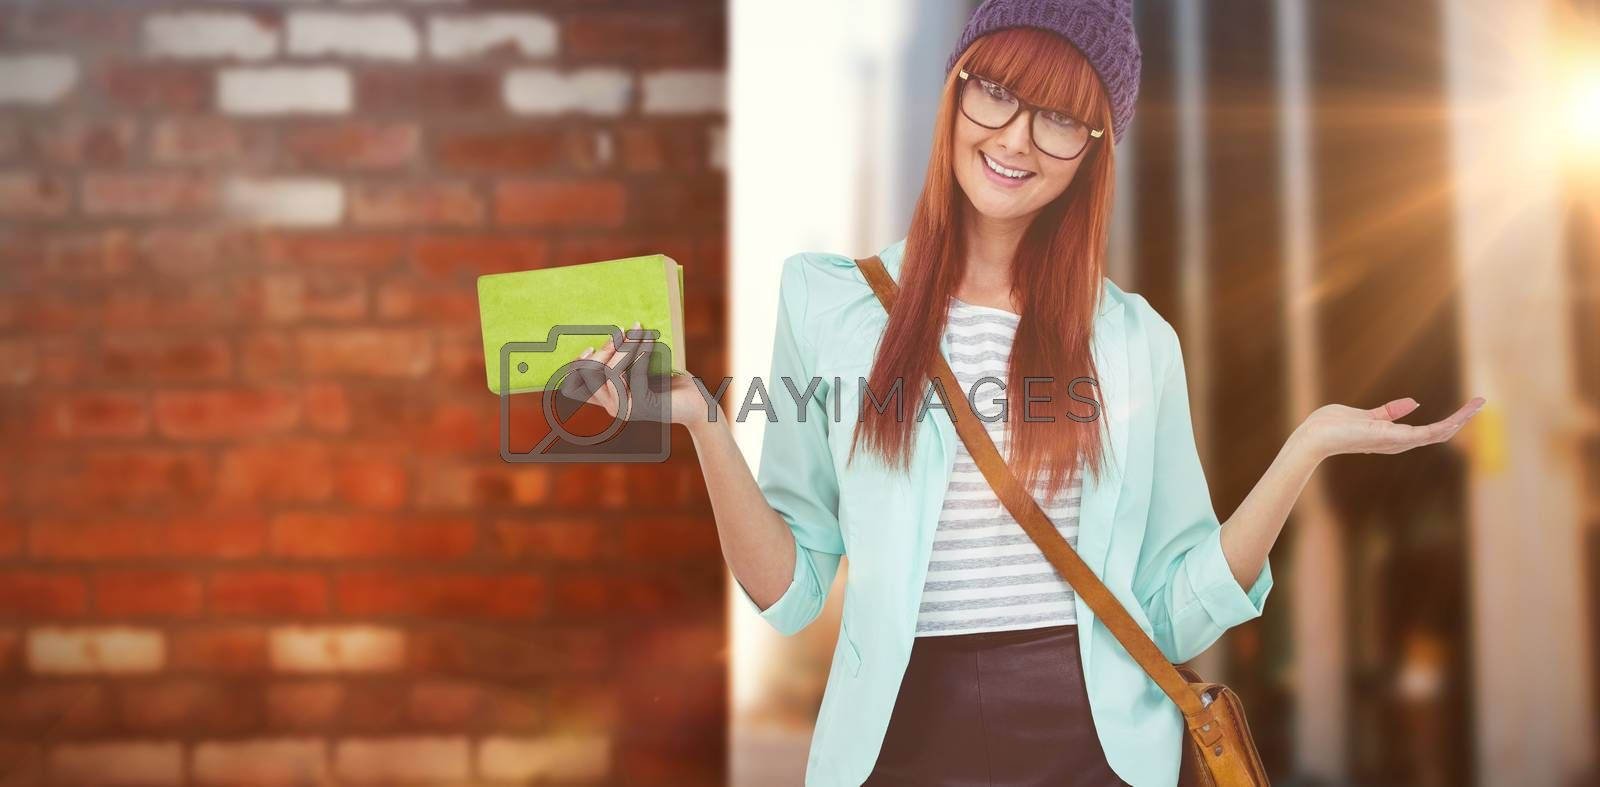 Smiling hipster woman with bag and book against wall of a house